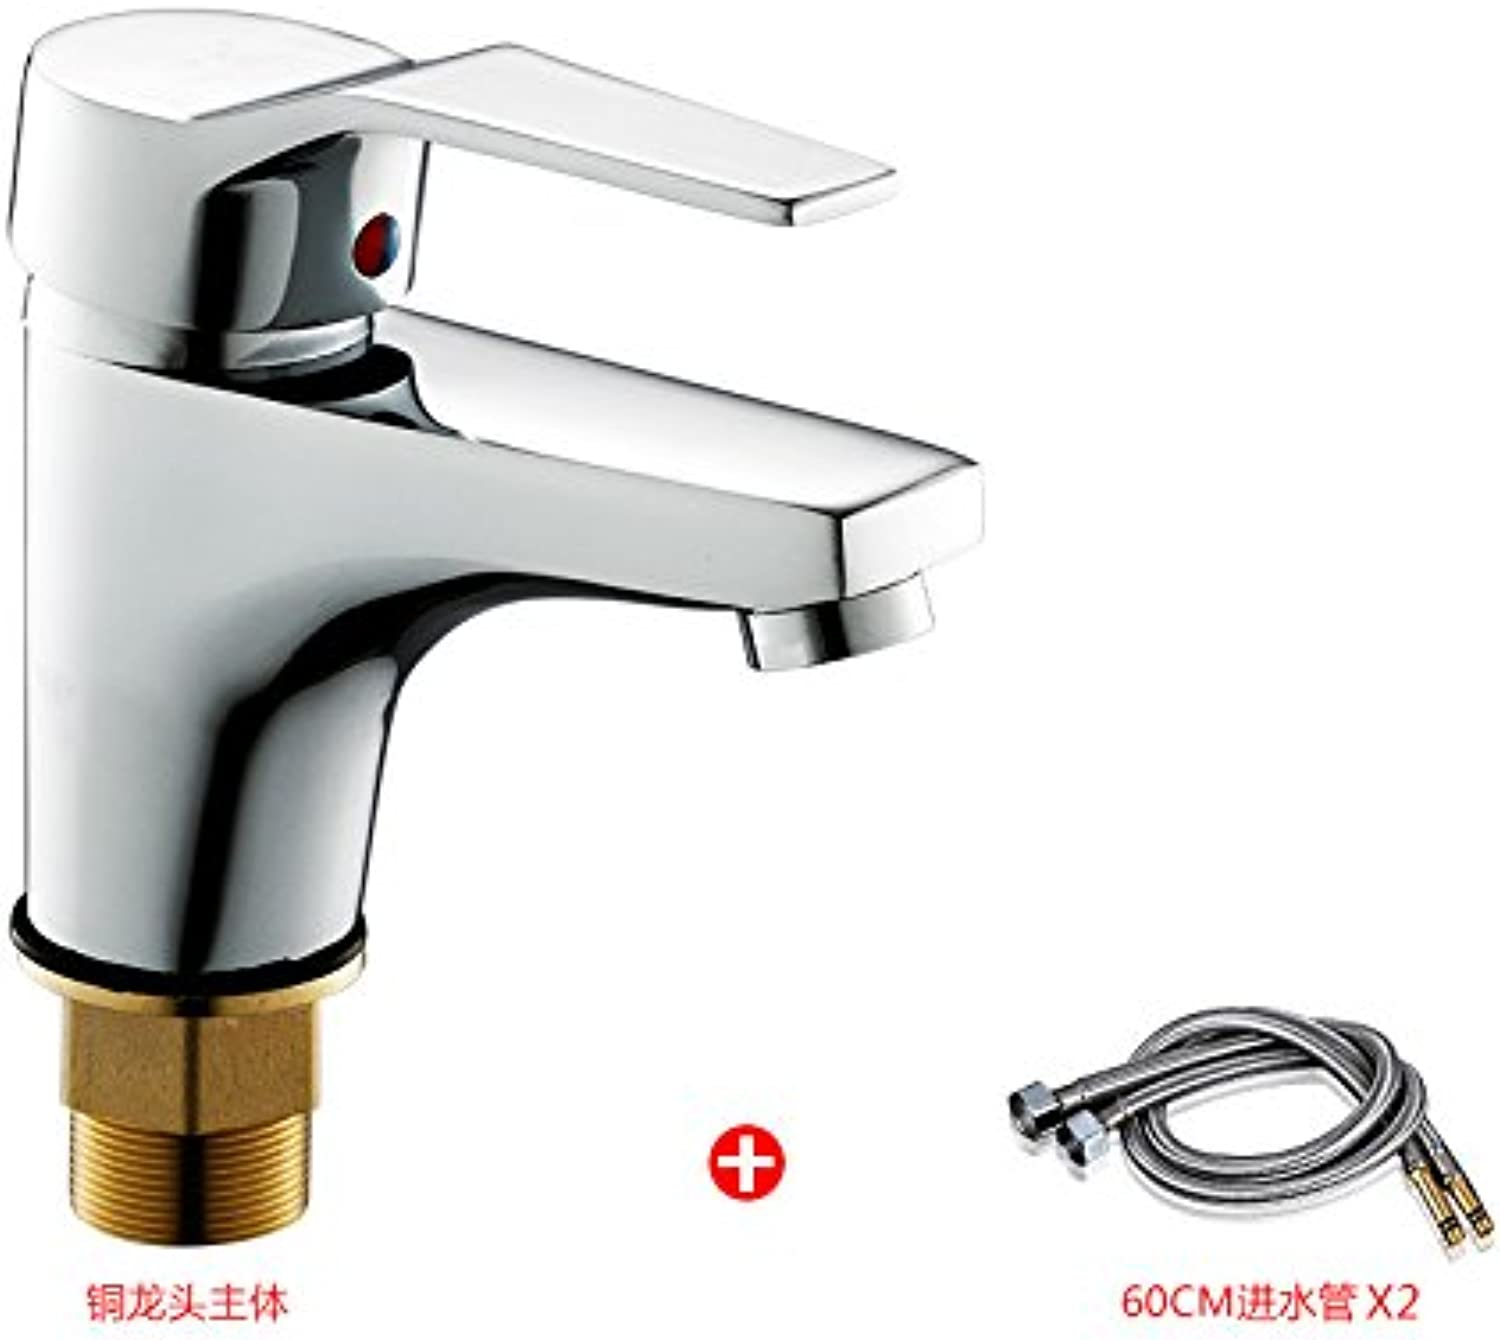 Von YIRUI basin Taps Basin faucet basin hot and cold faucet wash basin art basin faucet single hole heightening copper faucet,All copper faucet inlet pipe